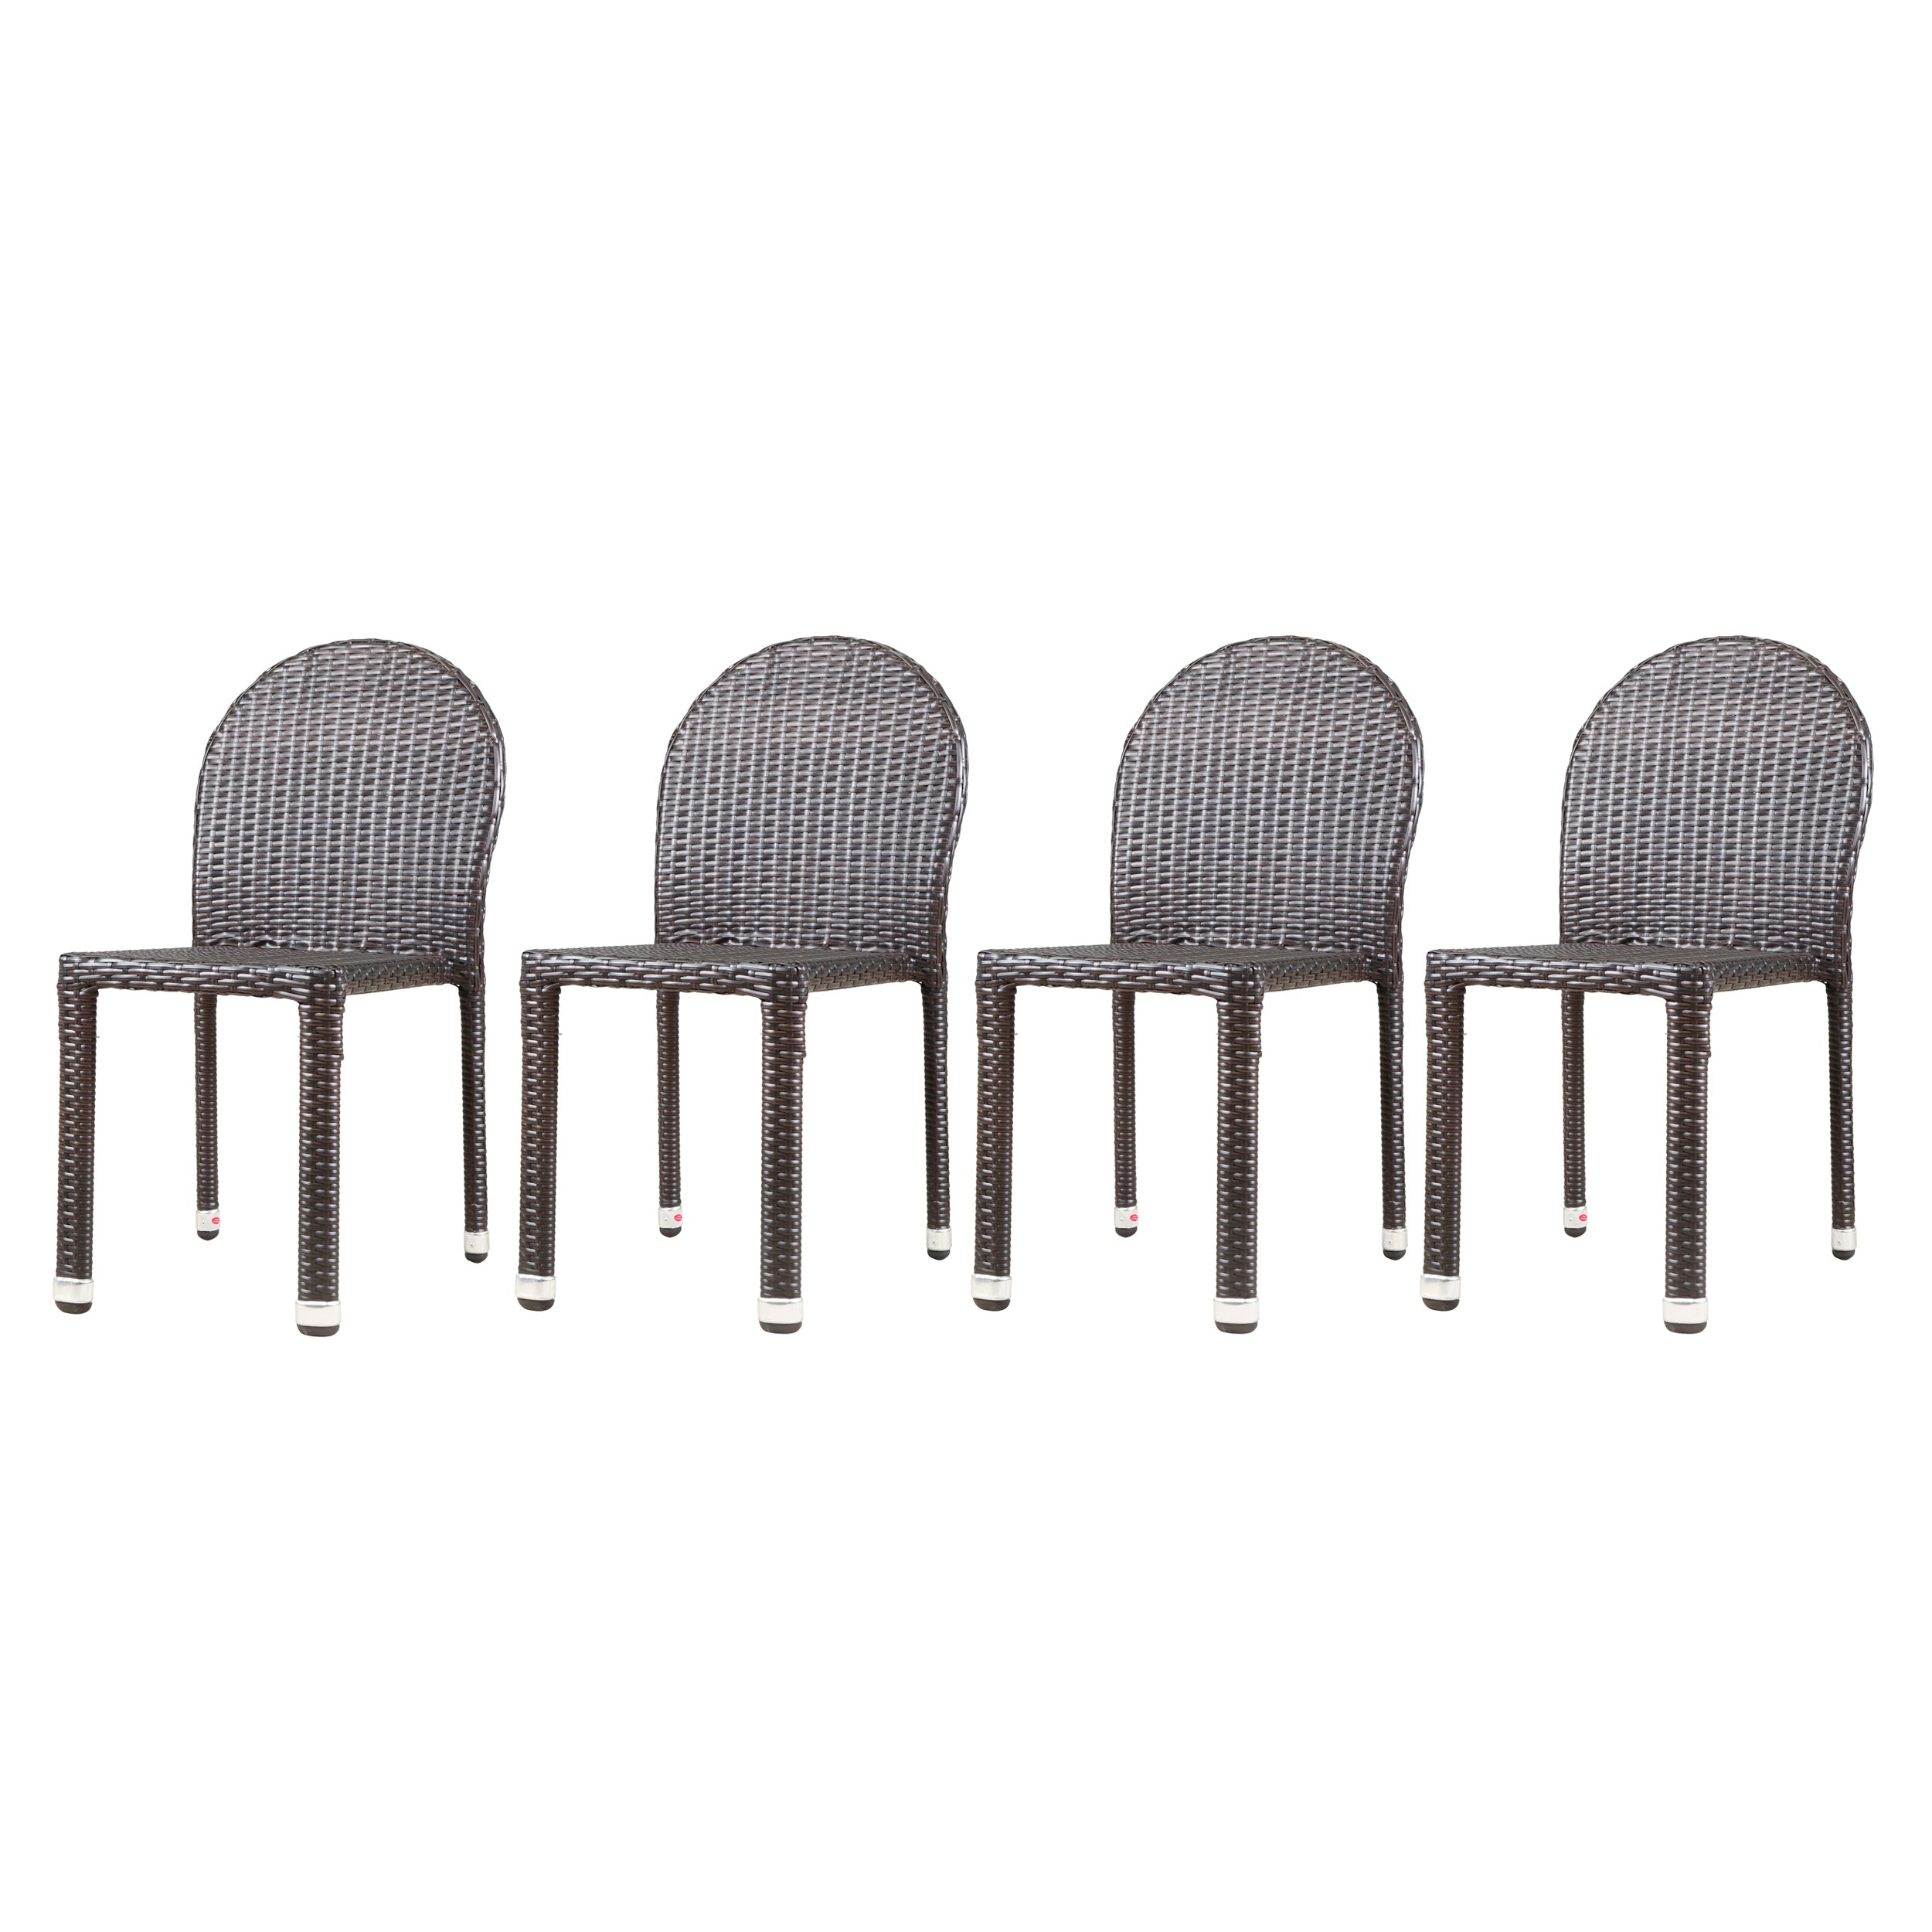 Amallie Outdoor Wicker Stacking Chairs with an Aluminum Frame Set of 4 Chateau Gray